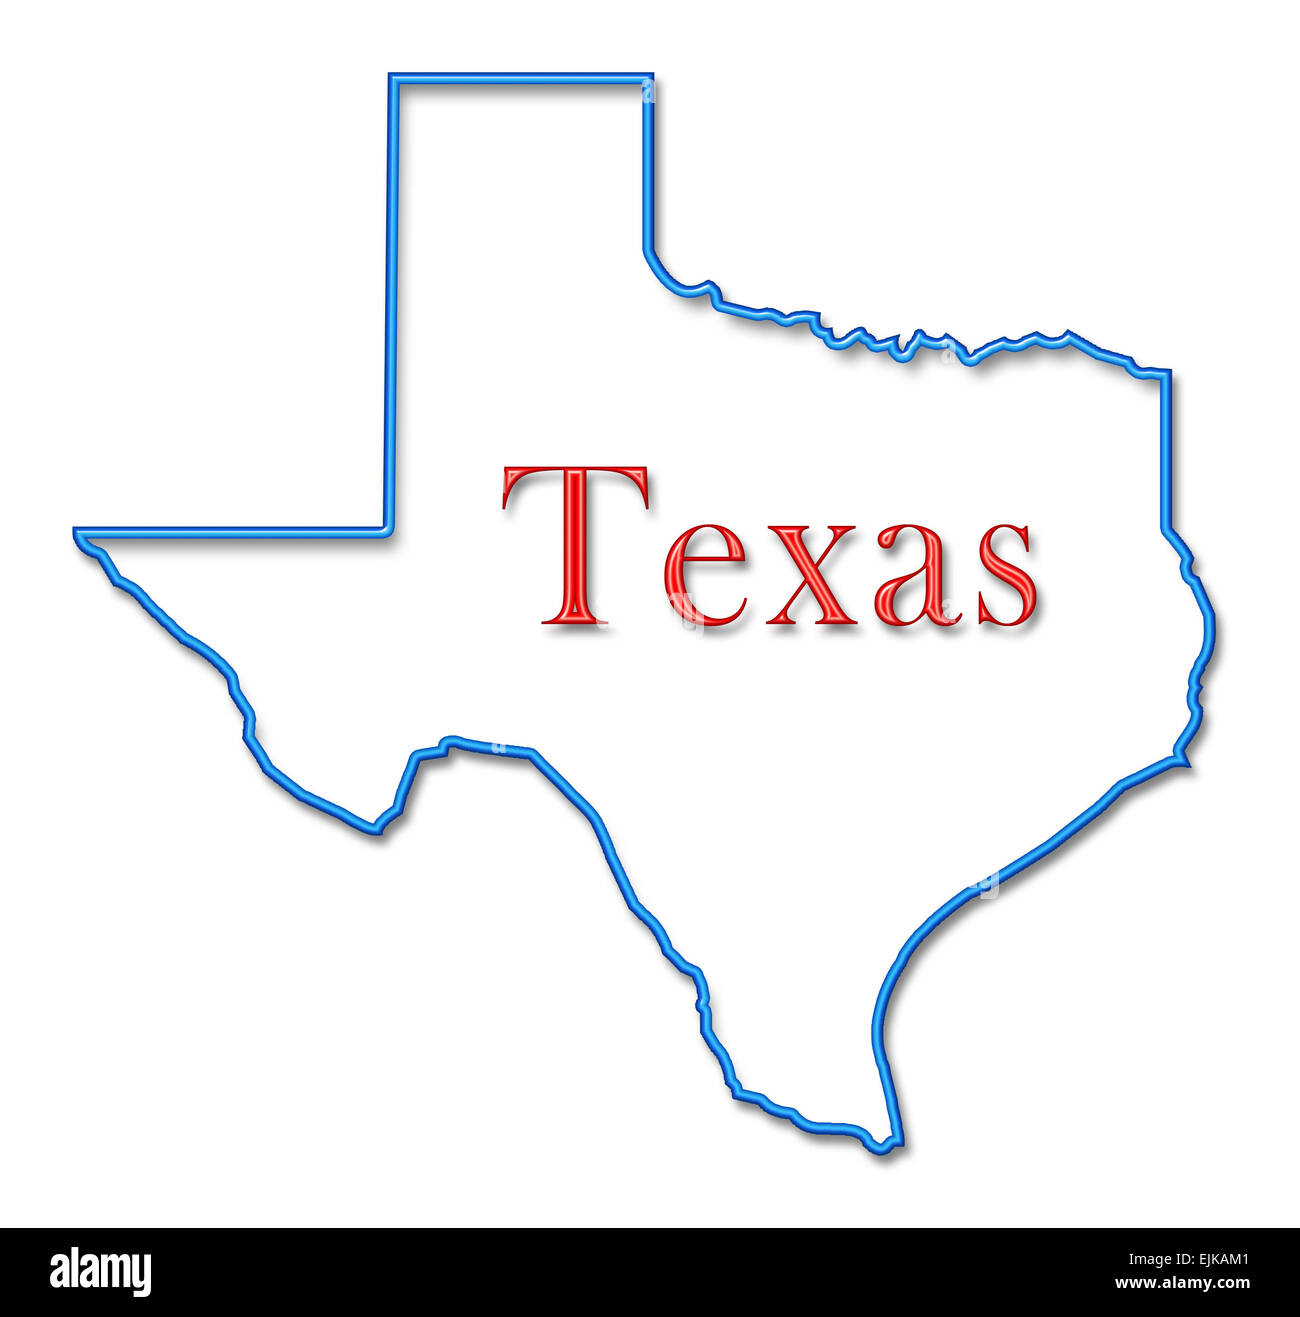 Texas Map With Neon Blue Outline And Red Lettering Stock Photo - Texas map outline